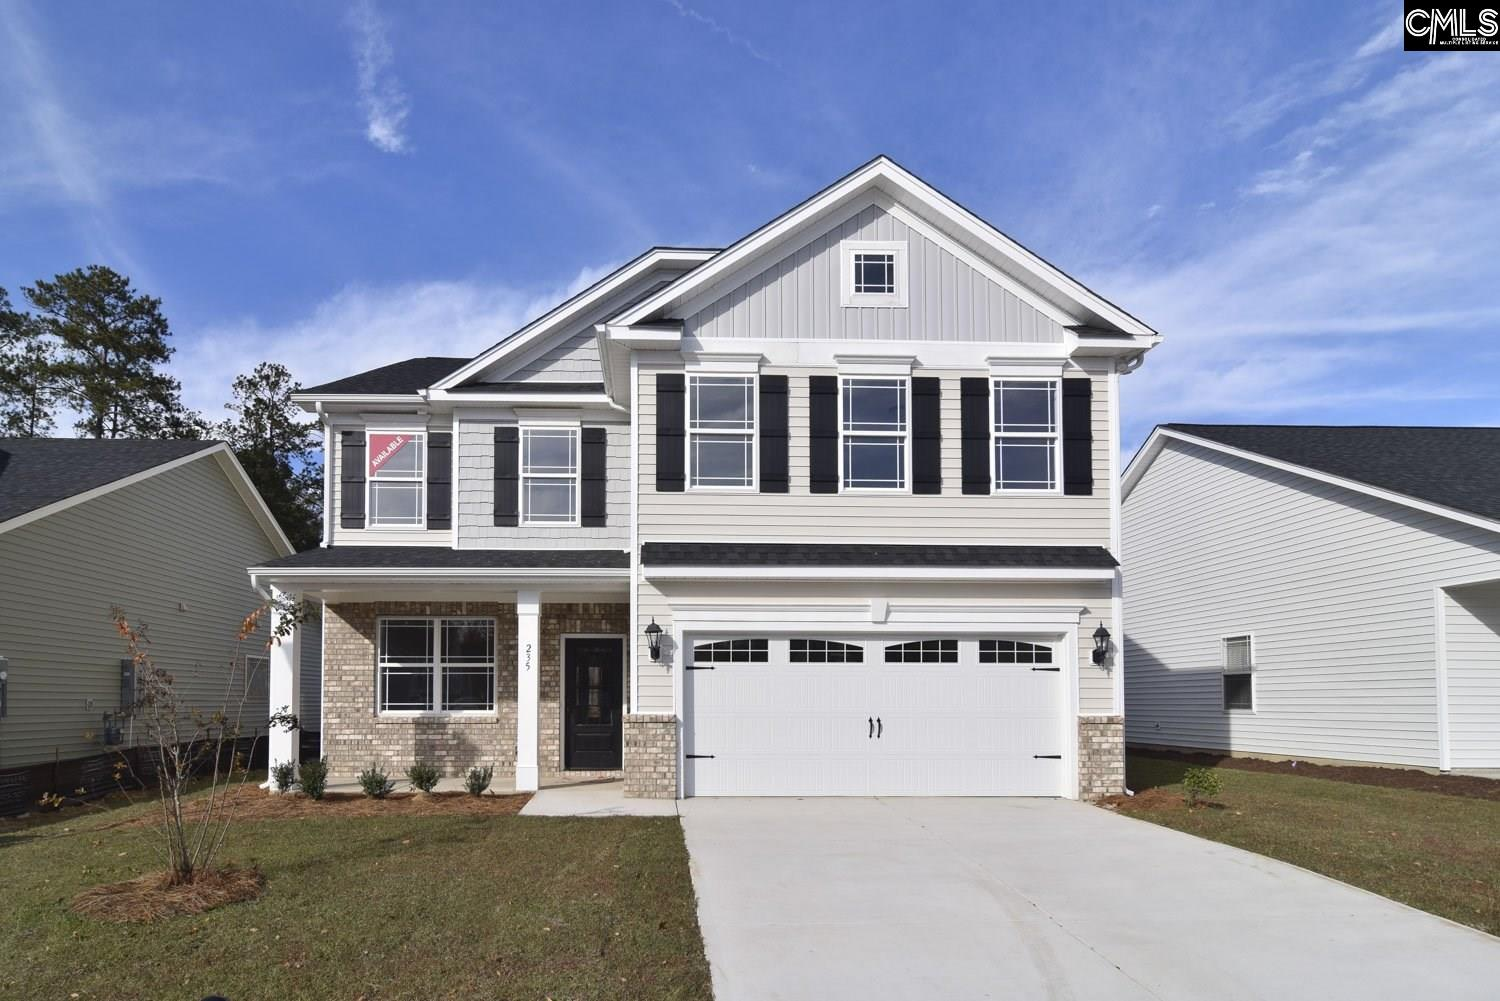 803 Adelaide Lexington, SC 29072